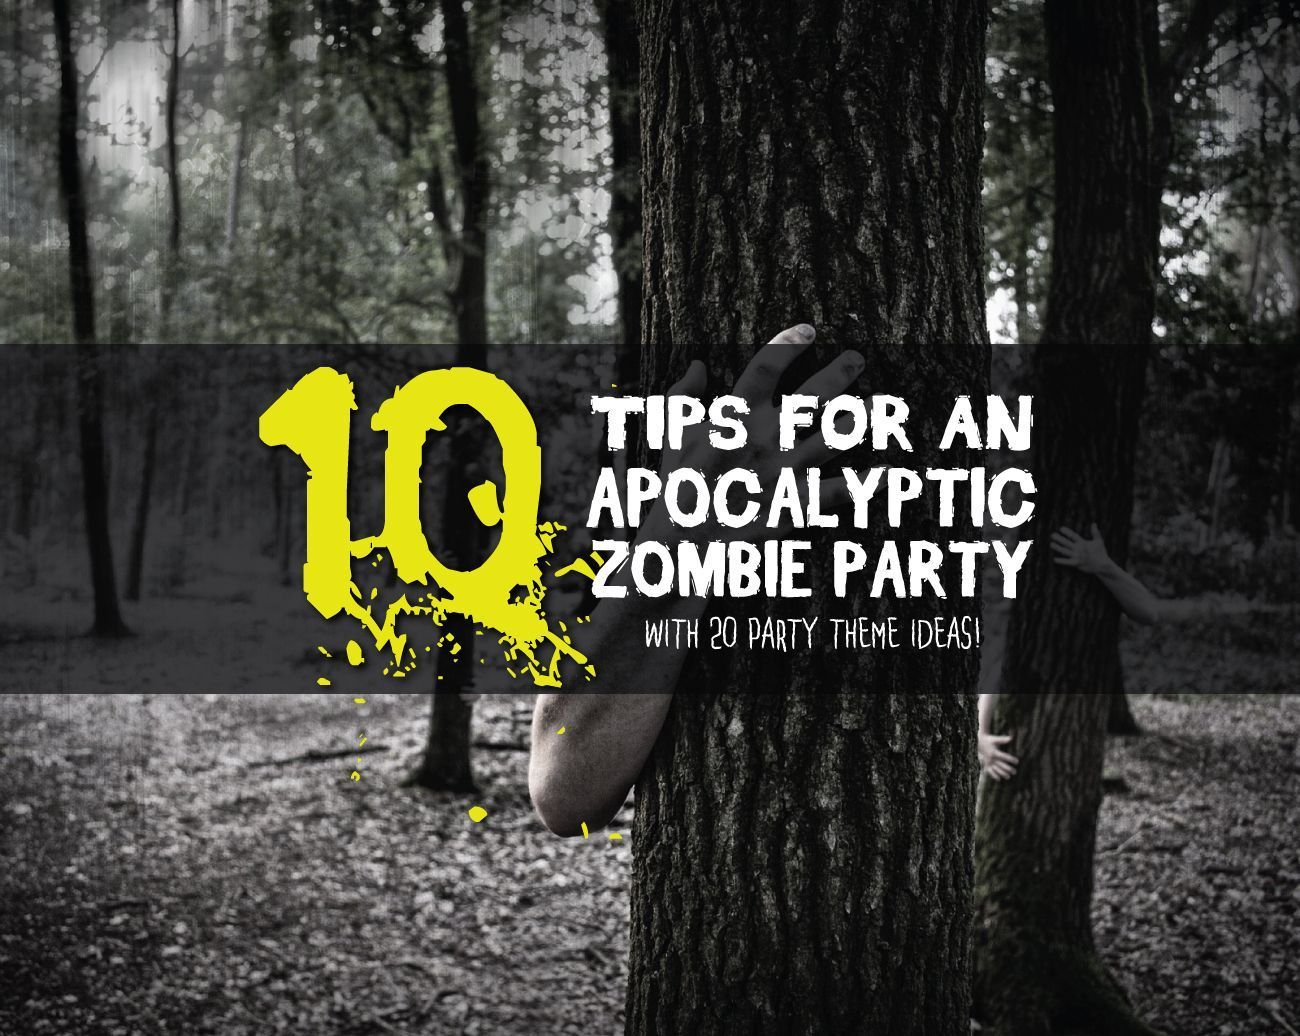 Planning an epic Zombie Apocalypse party? Here is the best collection of tips including 20 party theme ideas, a timeline, and a whole bunch of spine shivering p #zombieapocalypseparty Planning an epic Zombie Apocalypse party? Here is the best collection of tips including 20 party theme ideas, a timeline, and a whole bunch of spine shivering p #zombieapocalypseparty Planning an epic Zombie Apocalypse party? Here is the best collection of tips including 20 party theme ideas, a timeline, and a whol #zombieapocalypseparty